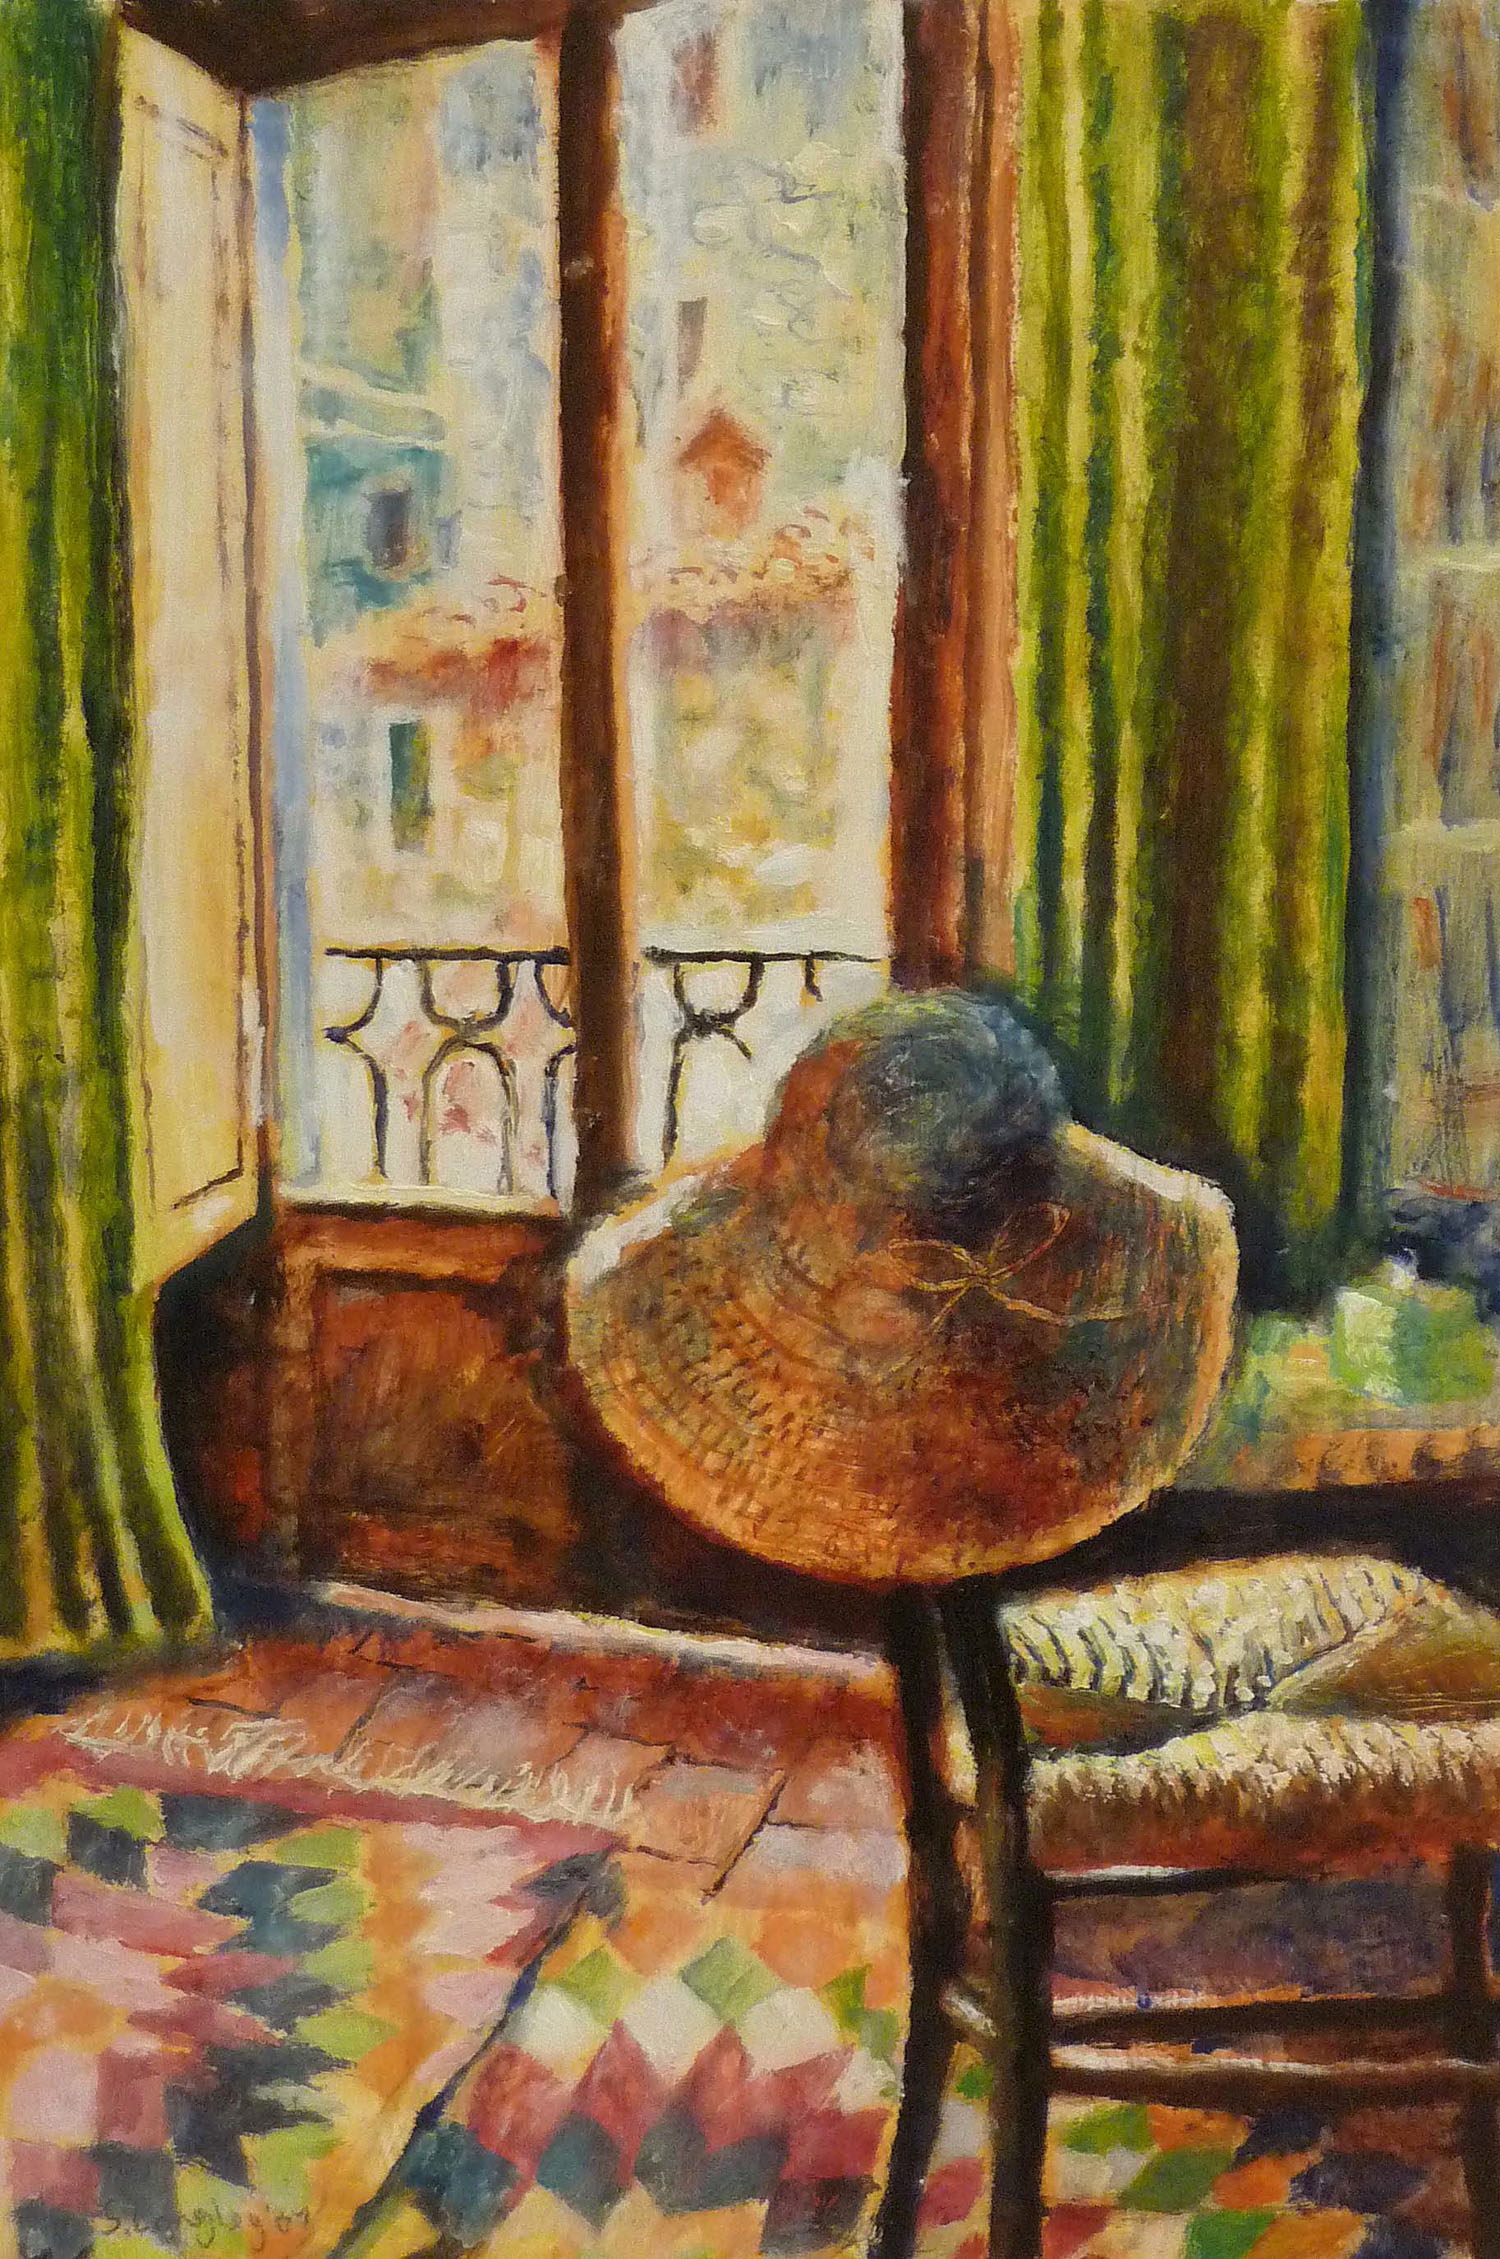 Sarah Longley_-_The Sun Hat_oil on board_45 x 31cm.jpg